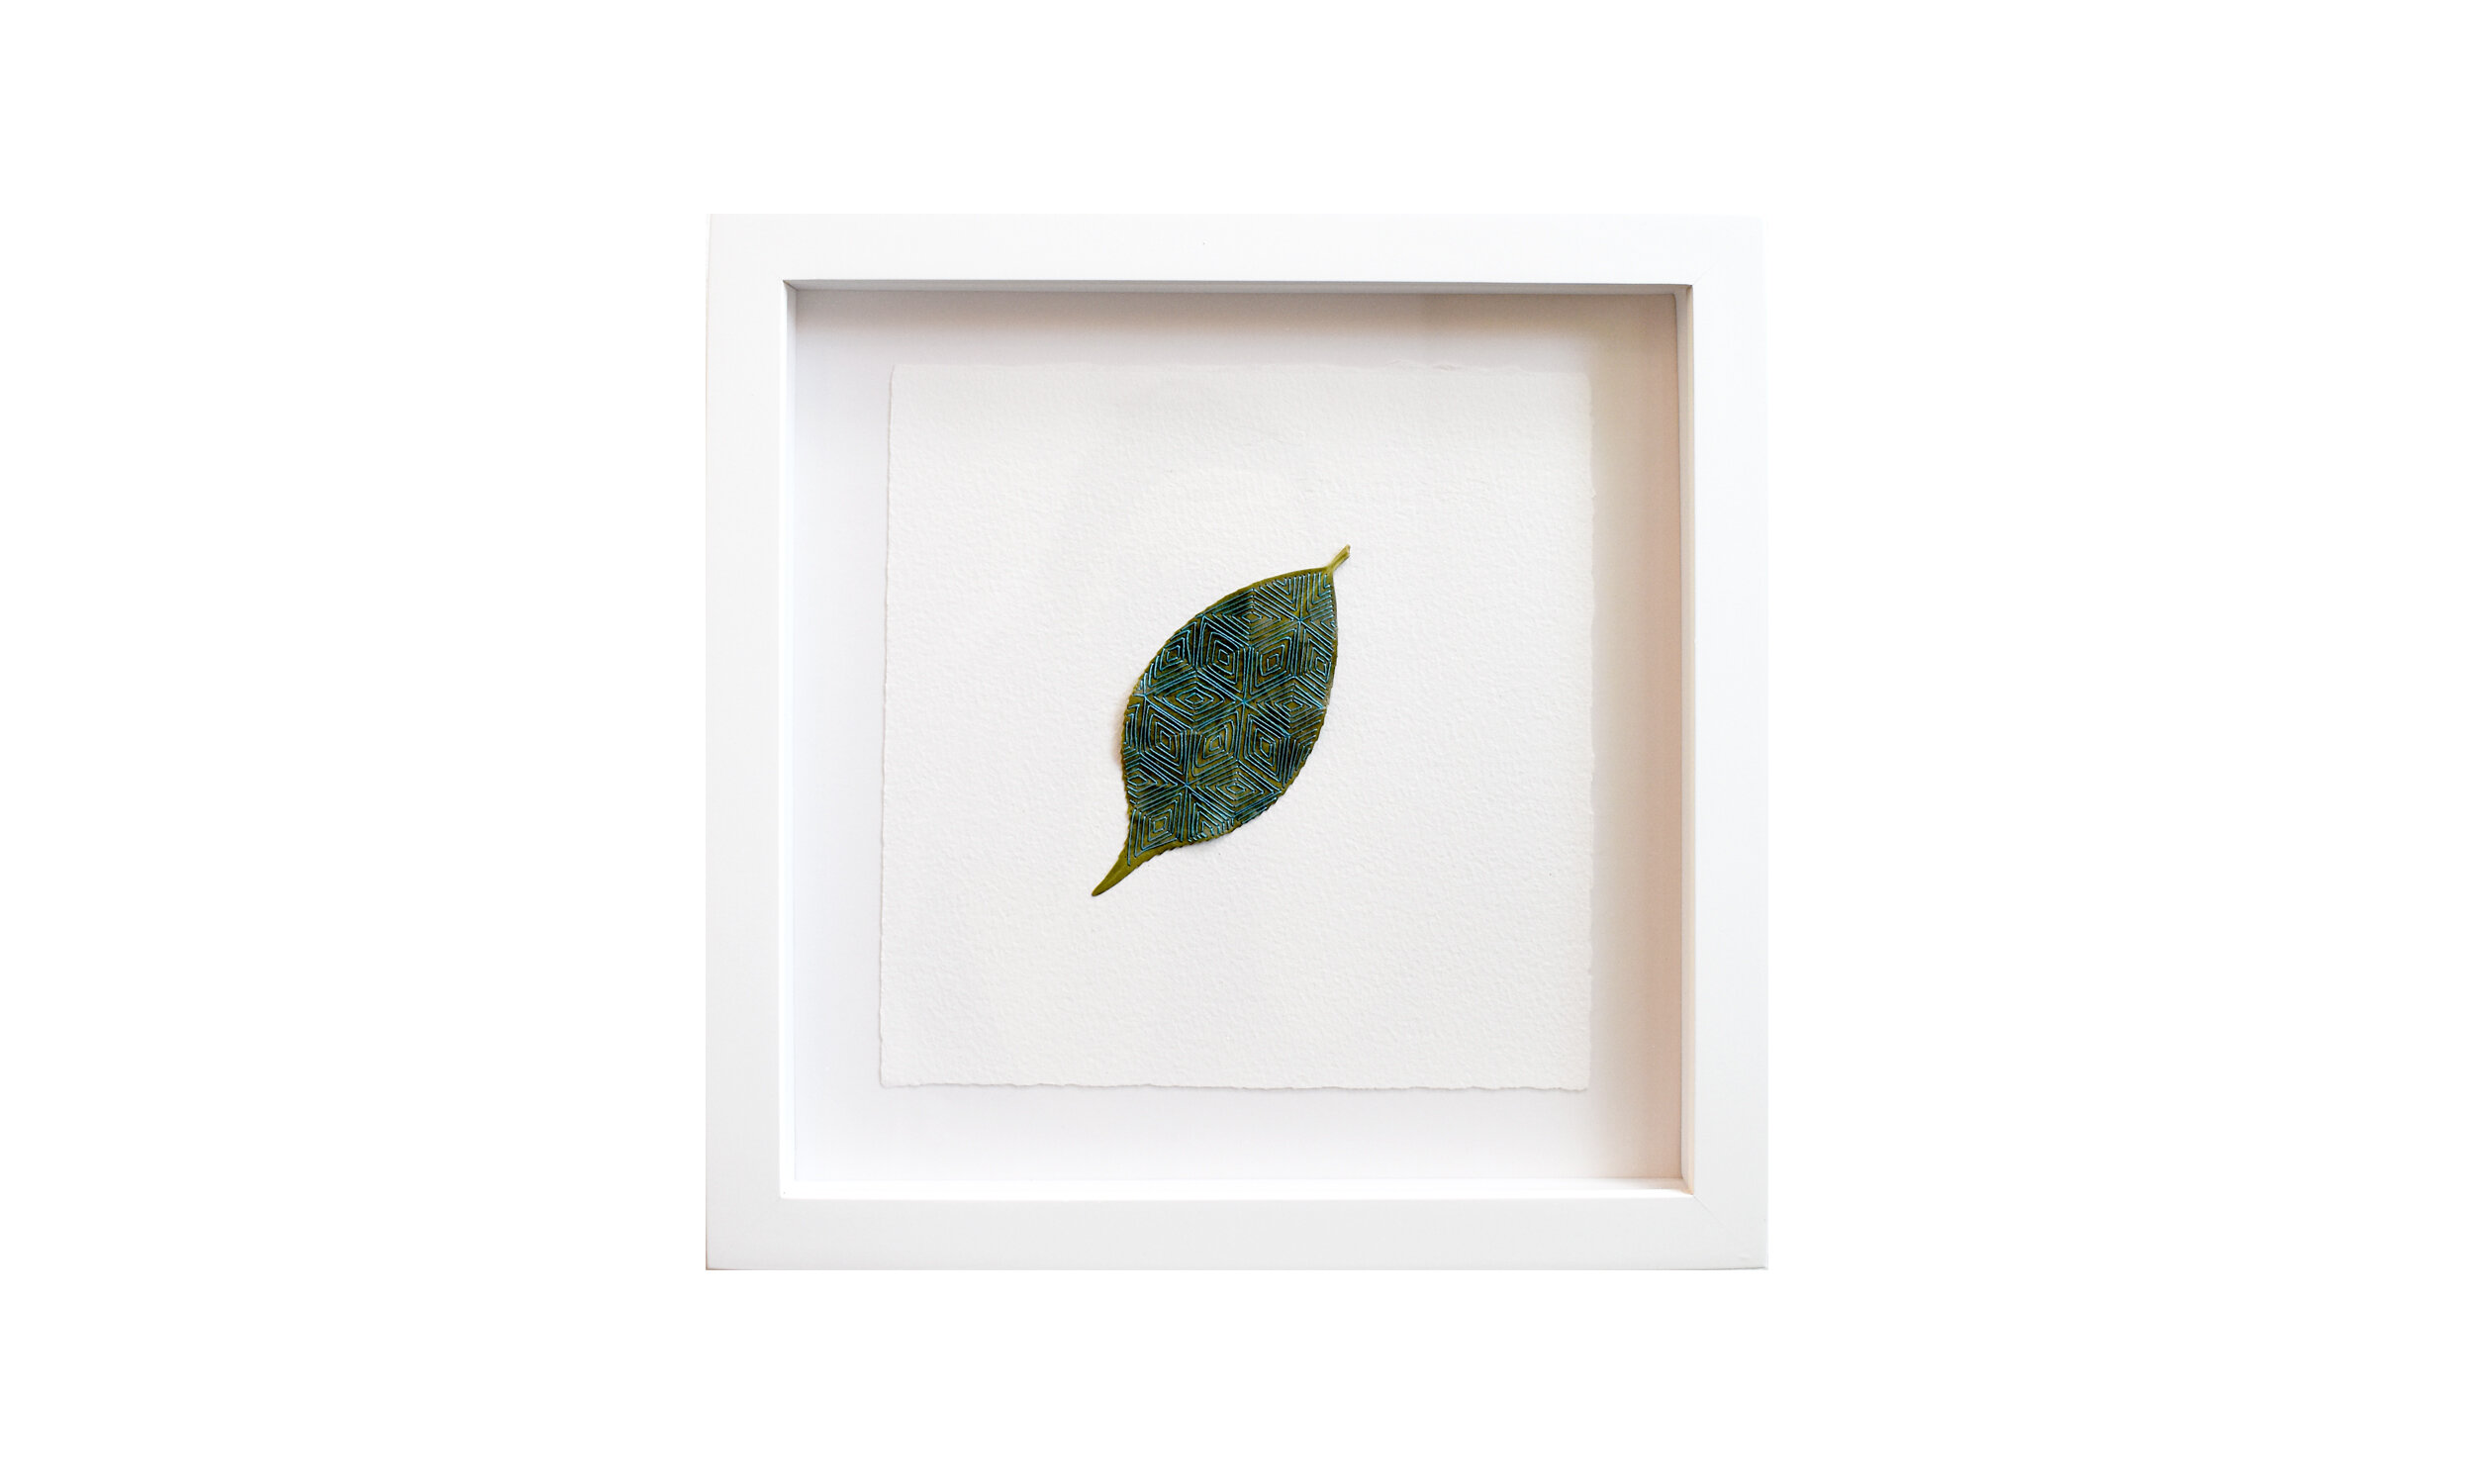 """Reaching Toward the Other,  hand stitched camellia leaf, 11.25"""" x 11.25"""", framed, $ 750    Contact us for purchase"""